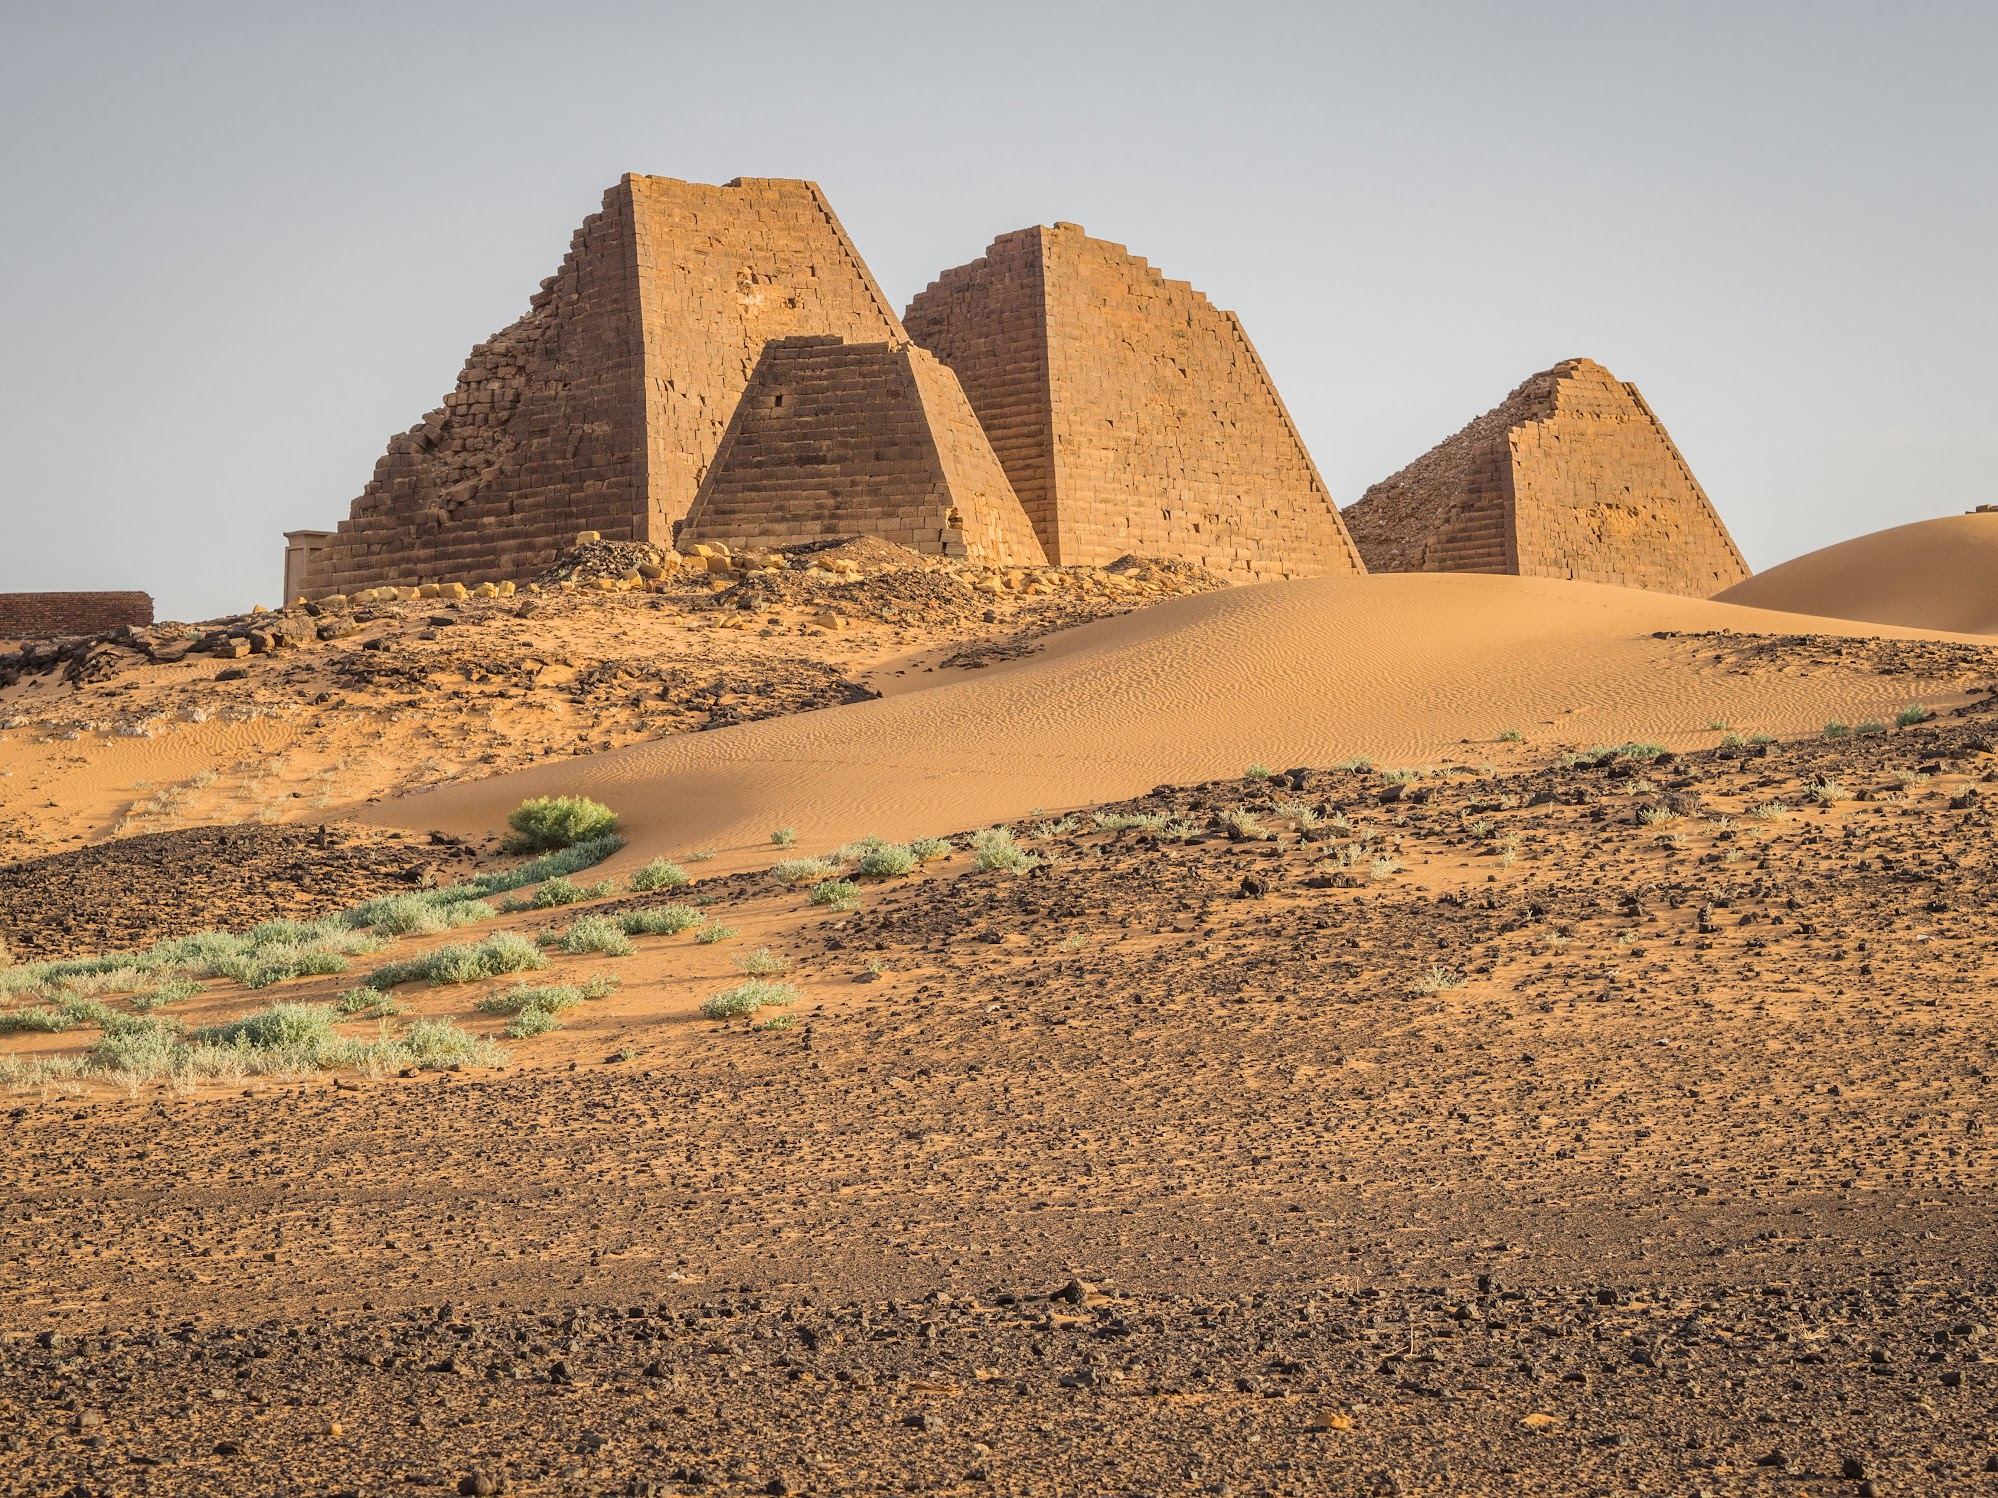 Meroe pyramids during sunset